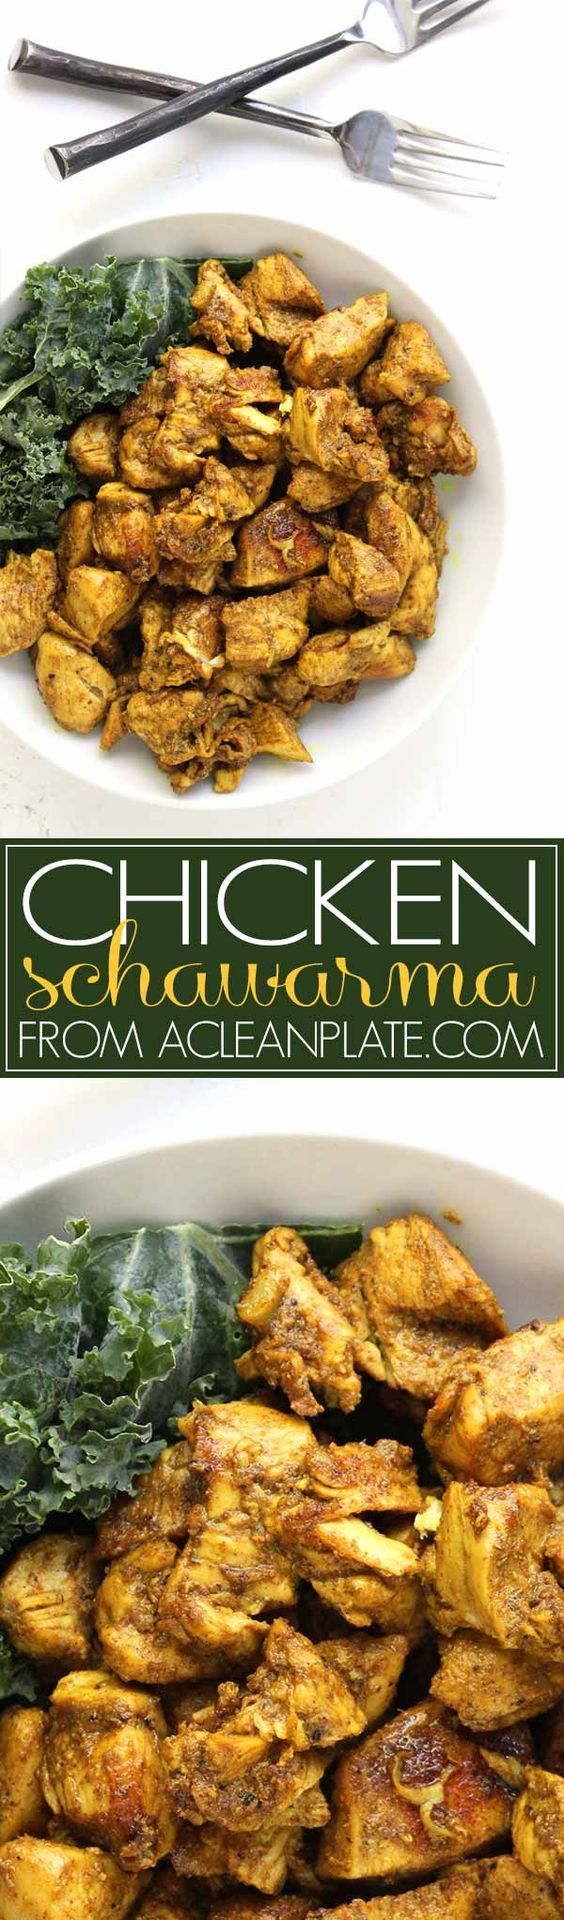 Autoimmune protocol-friendly Chicken Schawarma recipe from acleanplate.com